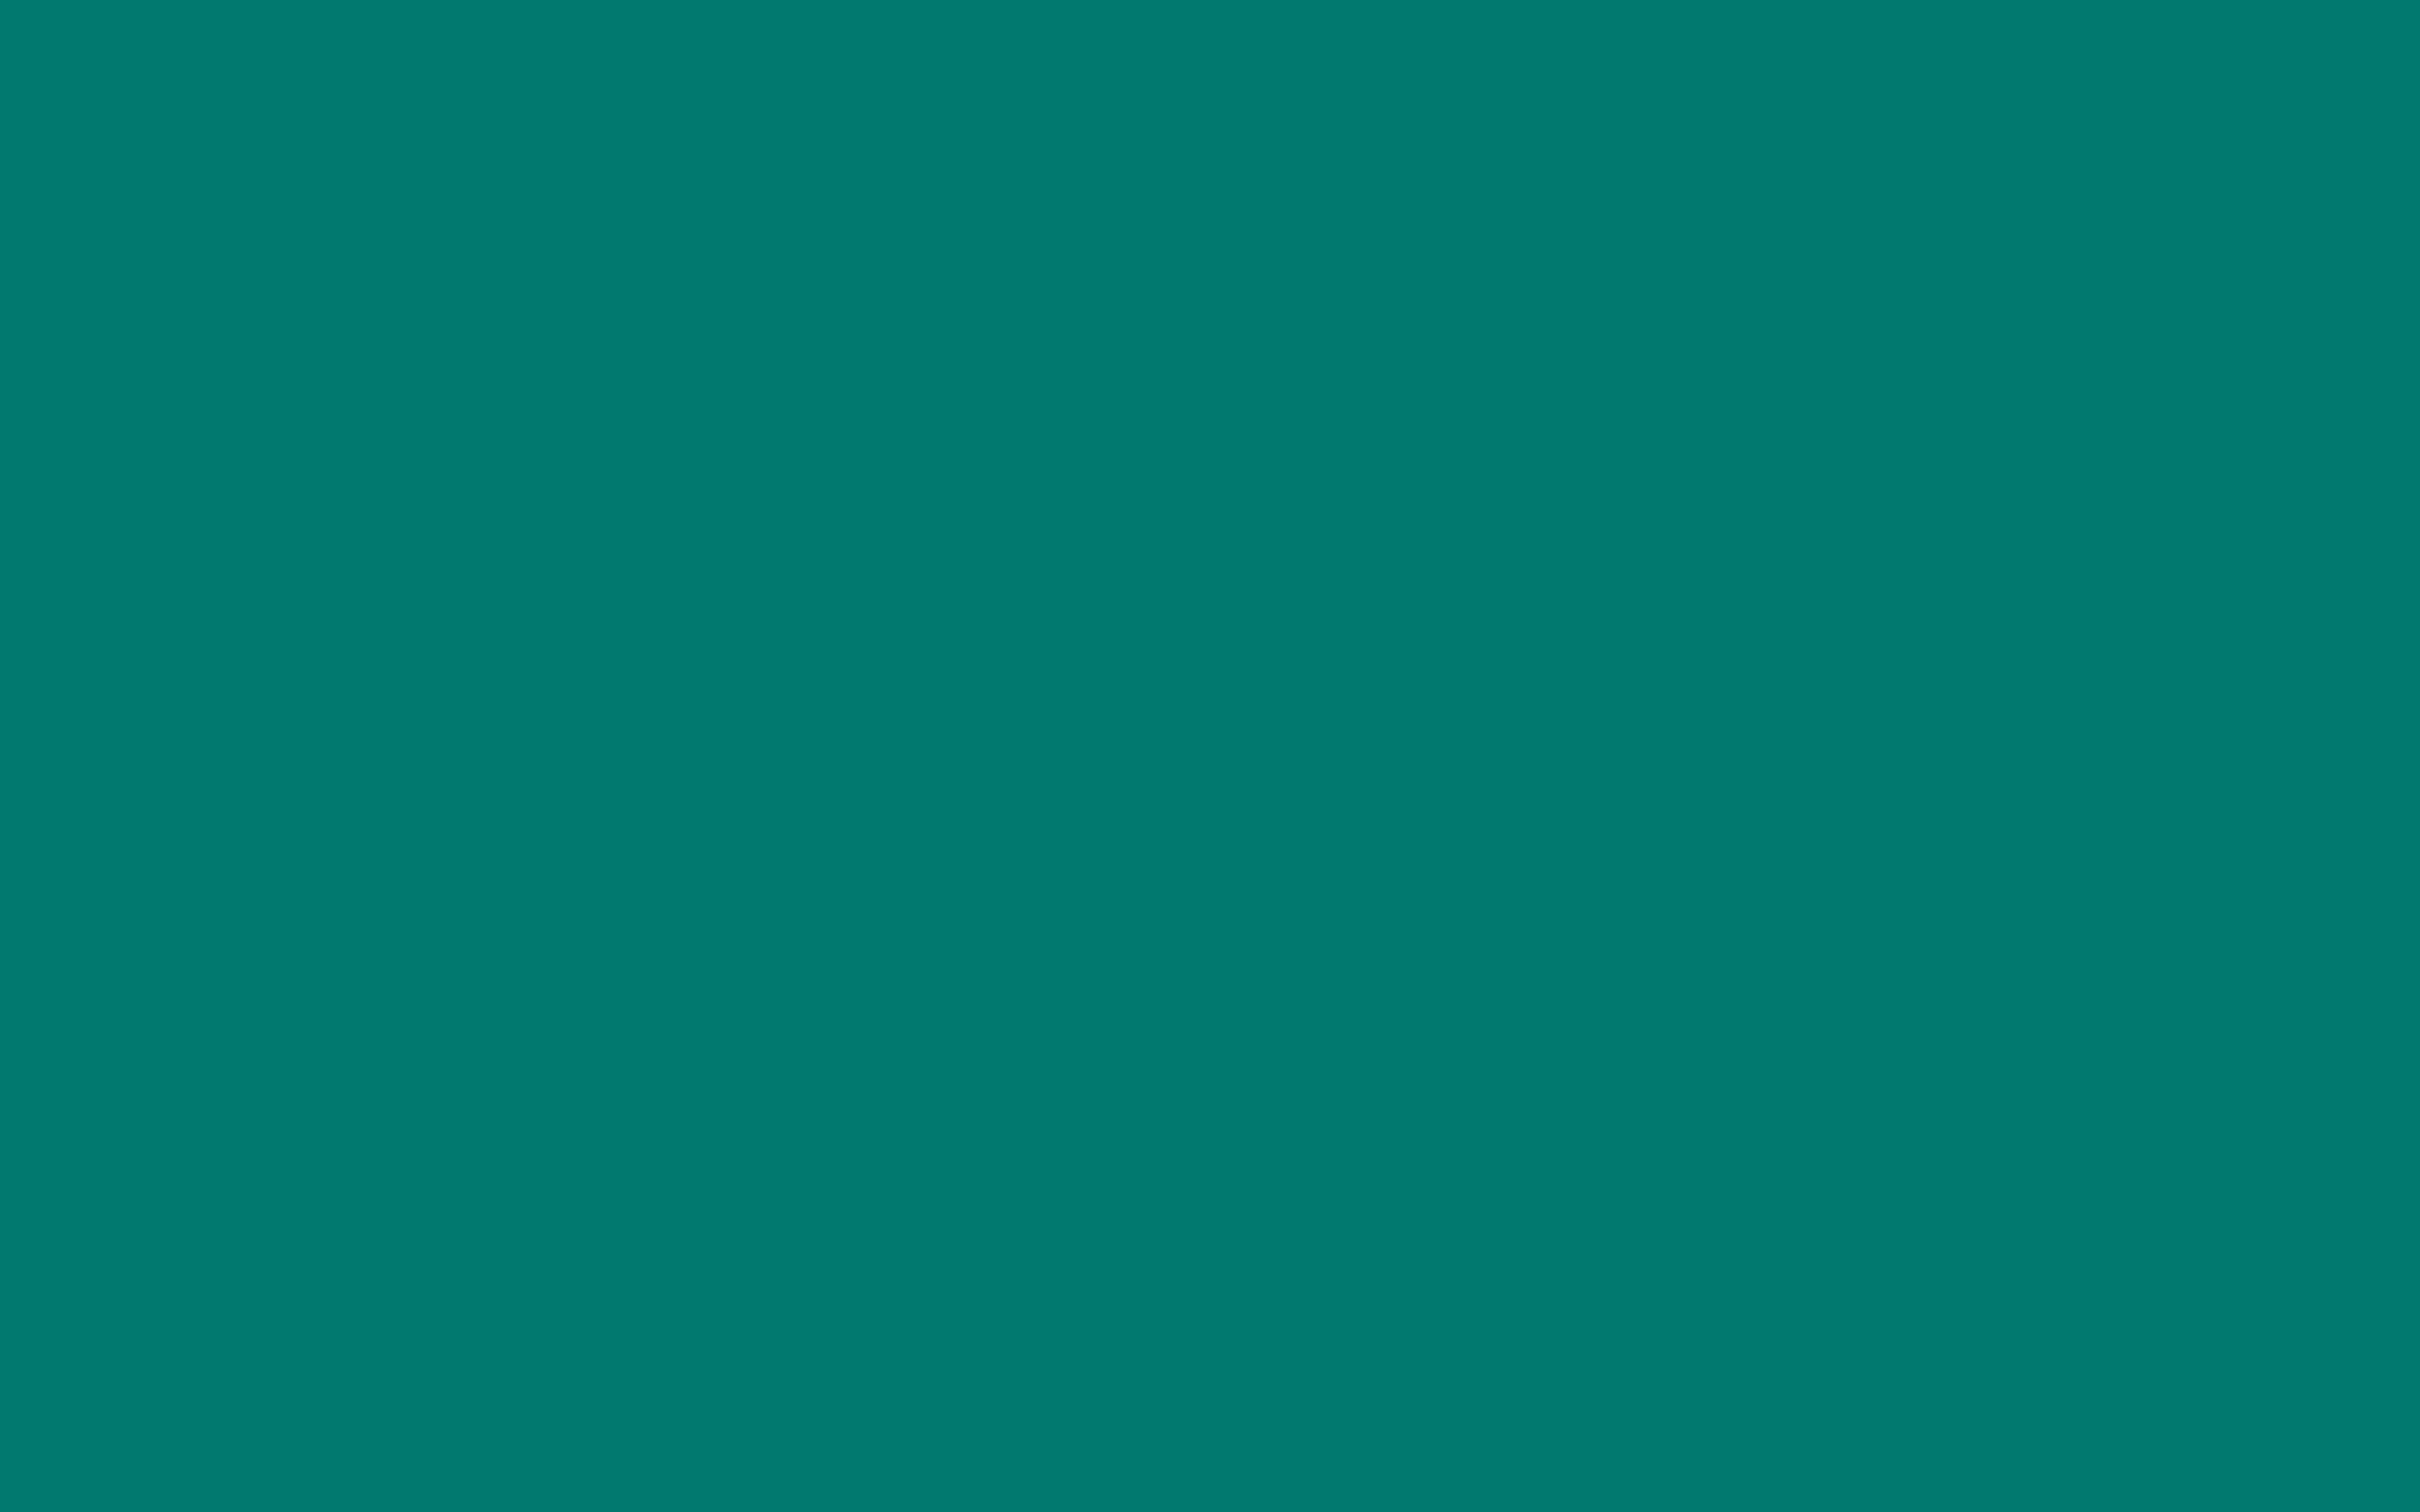 2560x1600 Pine Green Solid Color Background